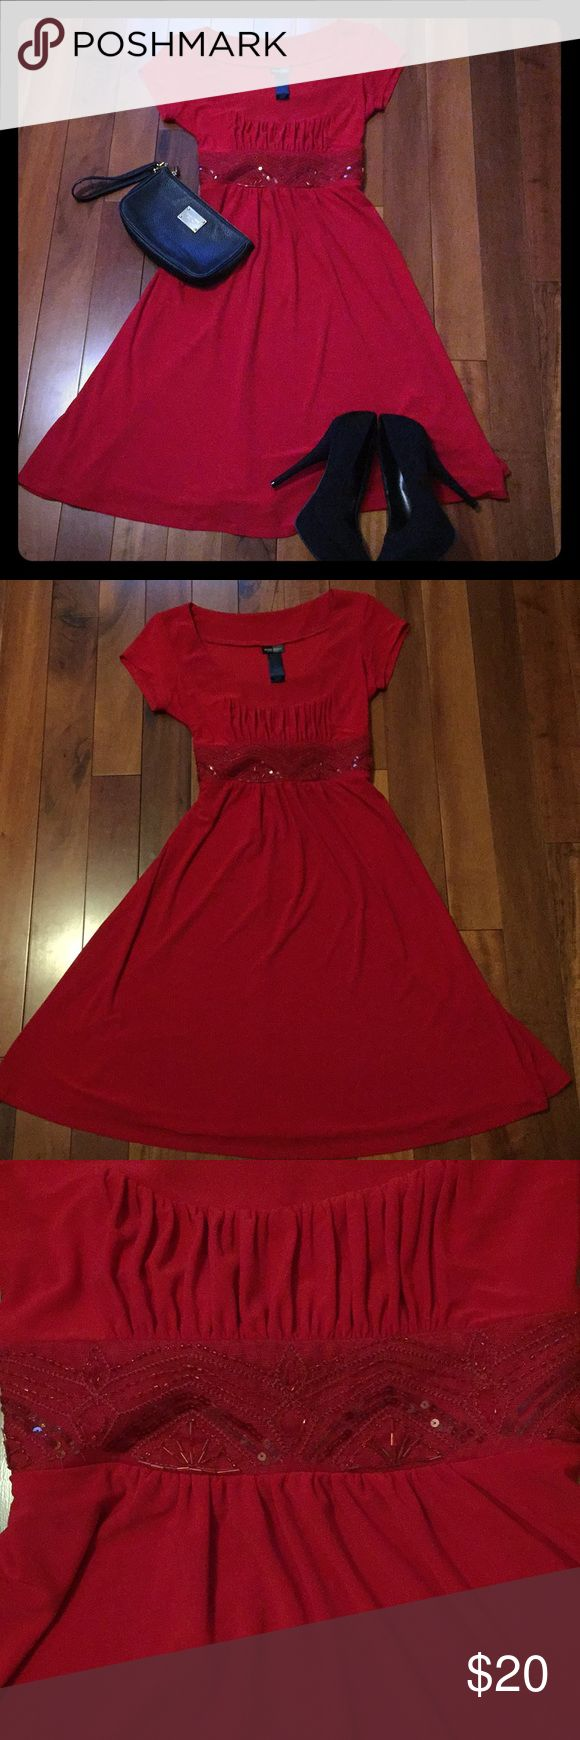 Bisou Bisou Red Dress Beautiful Red Dress by Bisou Bisou!  Just in time for the holidays, lovely dress for work or a party!  Red with beautiful beading at the waist. Size 6, excellent condition!  Make me an offer! Bisou Bisou Dresses